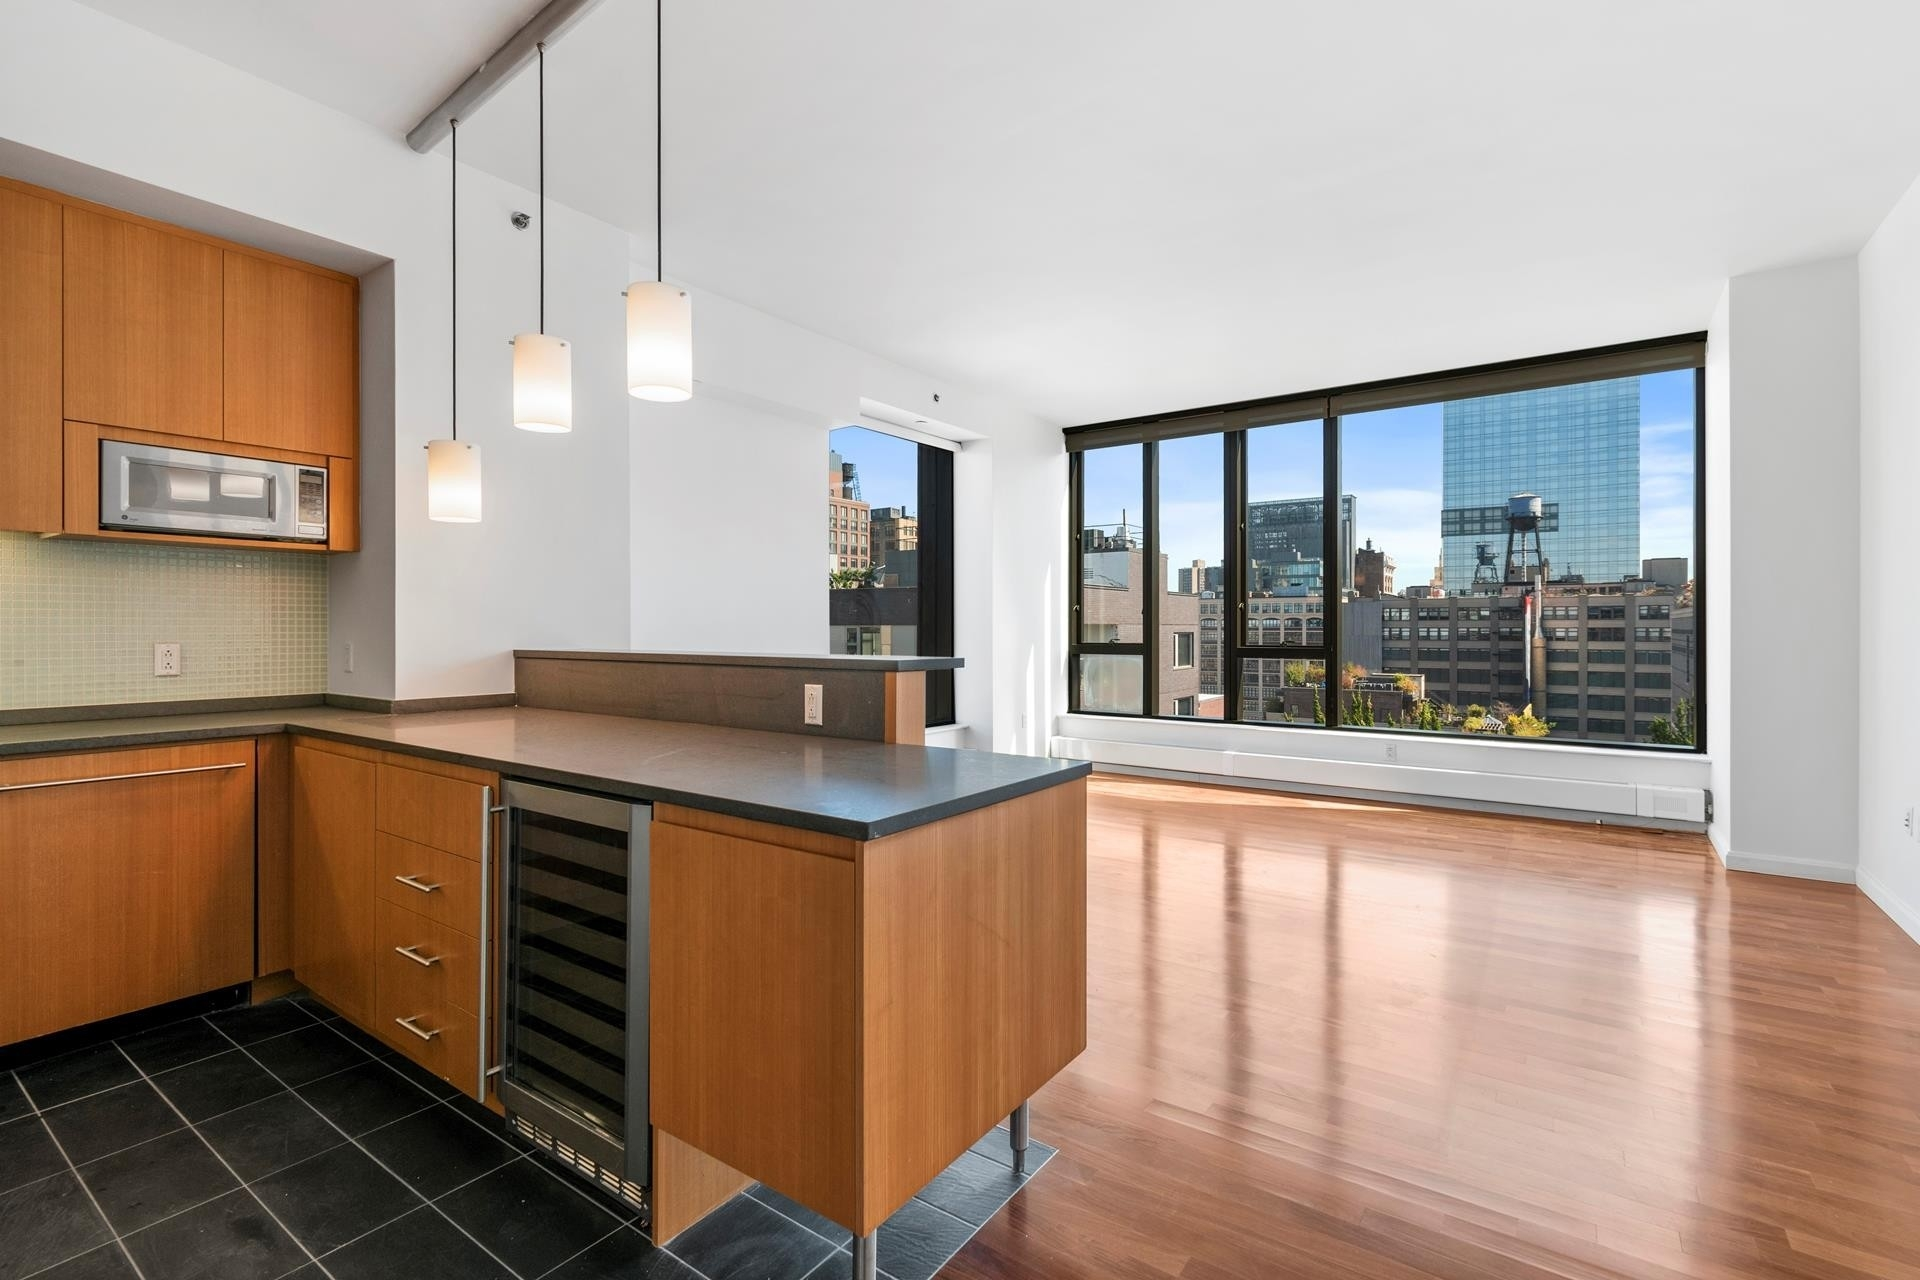 Property в 505 Greenwich St, 12E Hudson Square, New York, NY 10013